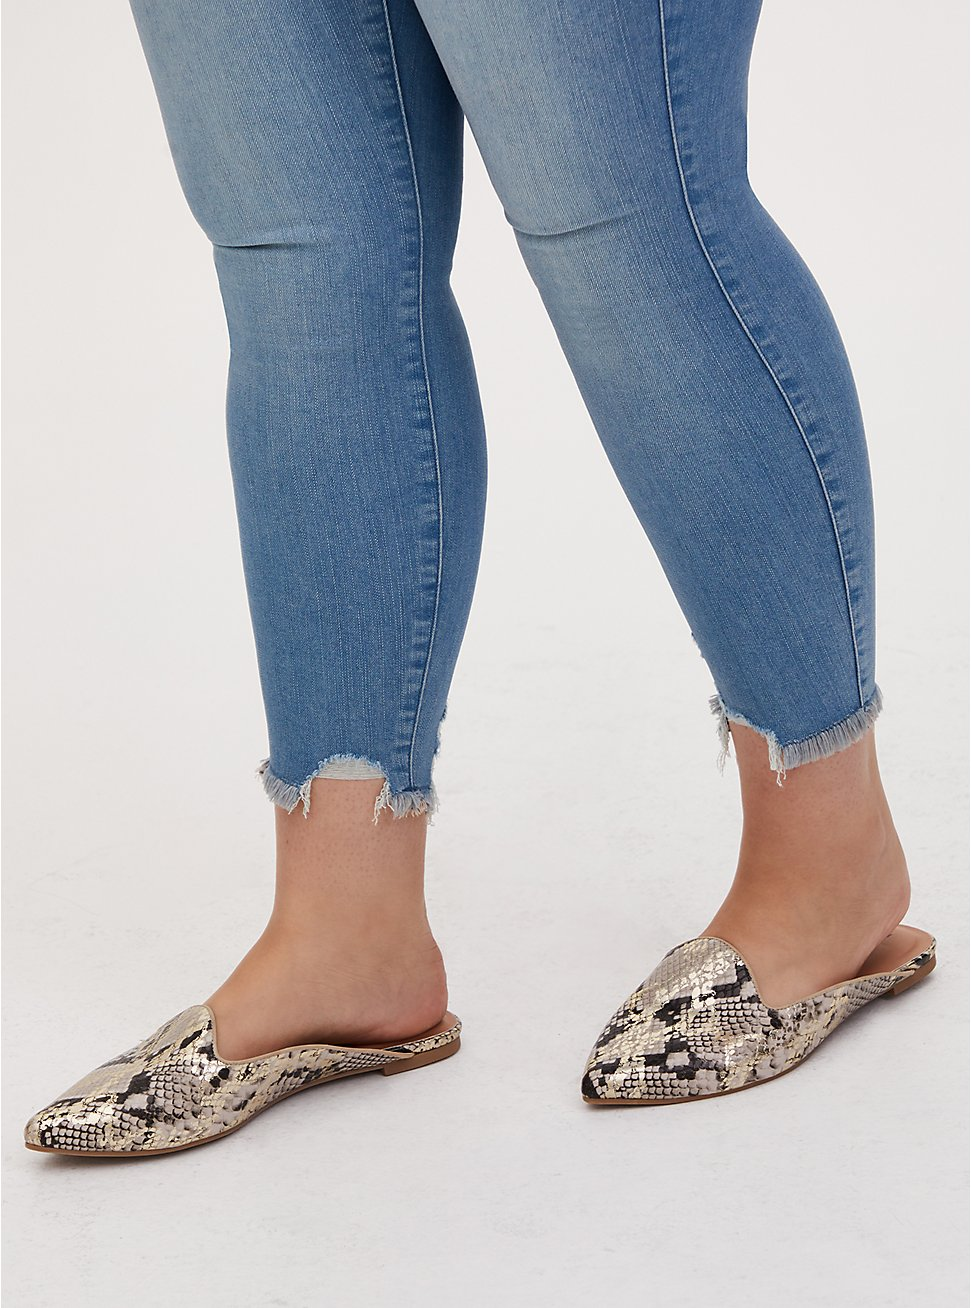 Snakeskin Print Faux Leather Pointed Toe Mule Loafer (WW), ANIMAL, hi-res